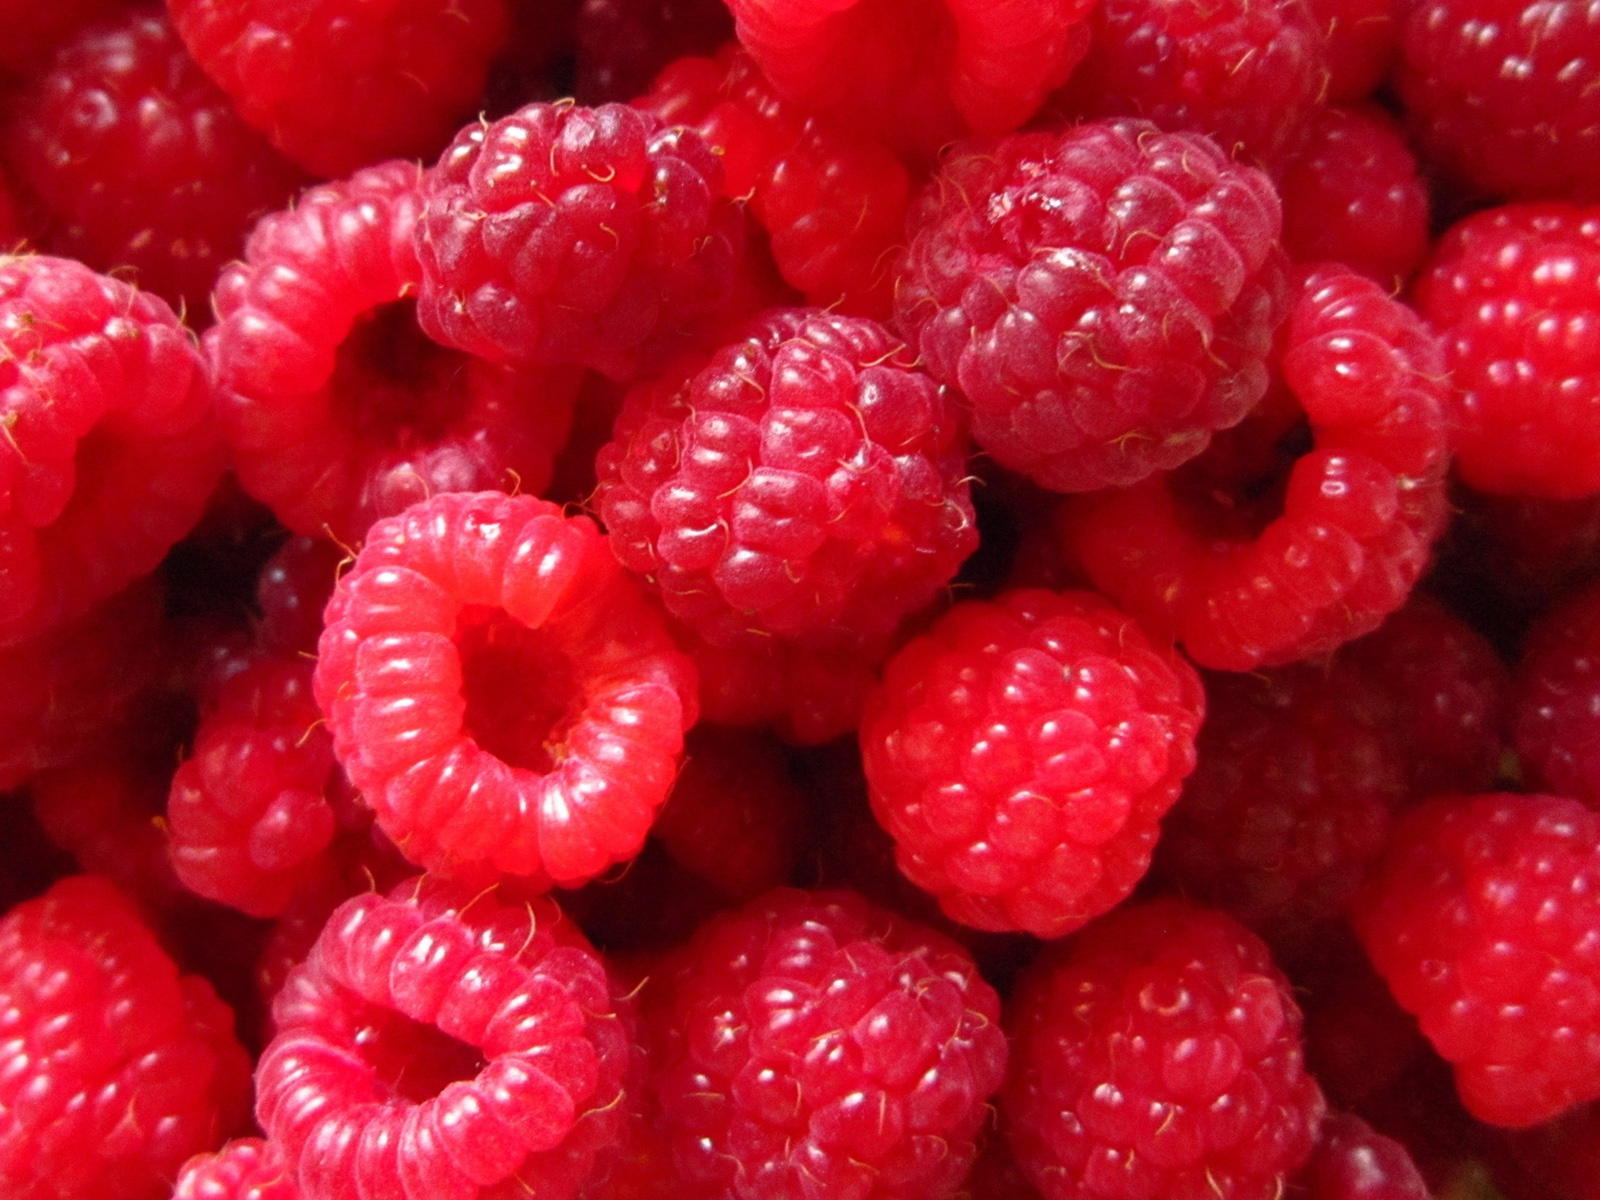 Red-Raspberry-berries-close-up-photography_1600x1200